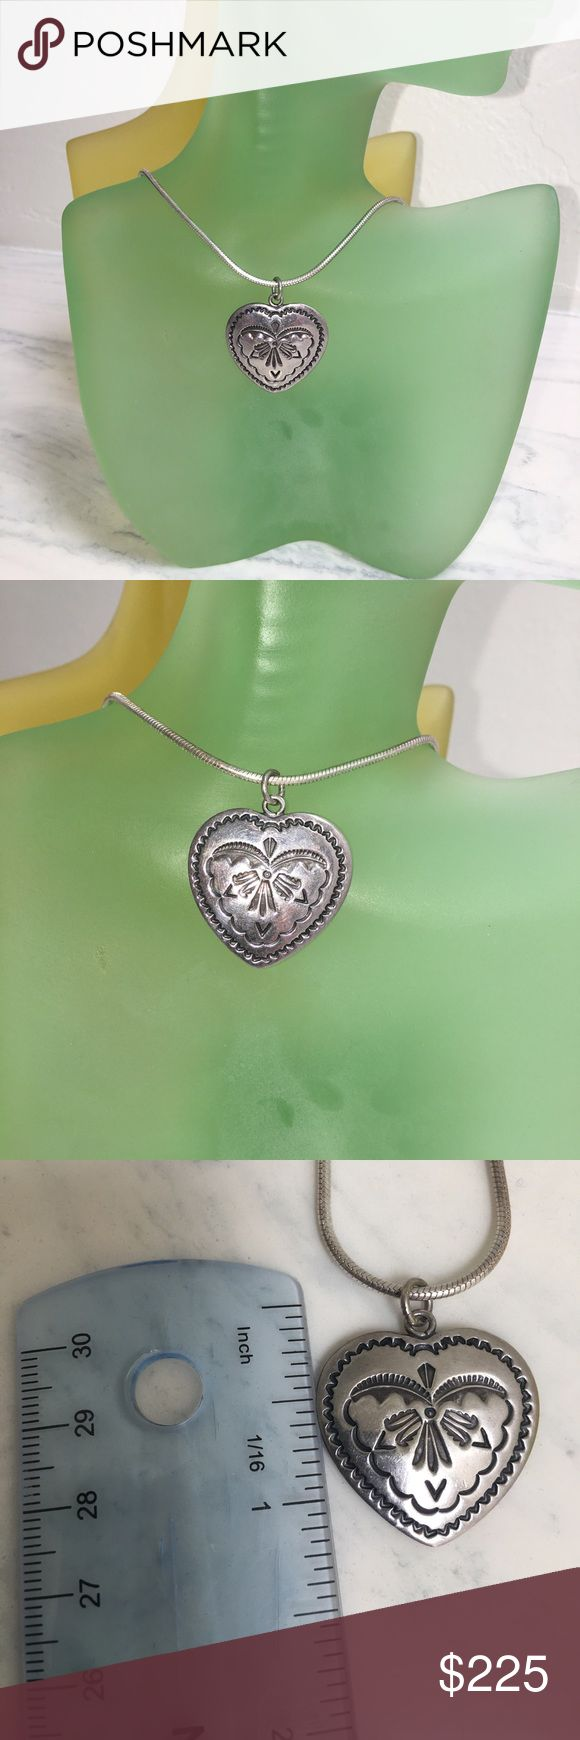 """Handmade Navajo Sterling Silver Heart Necklace I'm selling a fabulous Handmade Native American Indian """"Navajo"""" Sterling Silver Heart Necklace. It's stamped Sterling Silver and the Navajo Artist name is also stamped into the silver. The Sterling Silver Serpentine chain measures 18"""".  I LOVE the hand stamp work on the front of the silver heart, its been very well done. ❣️💕♥️😘🤗 Jewelry Necklaces"""